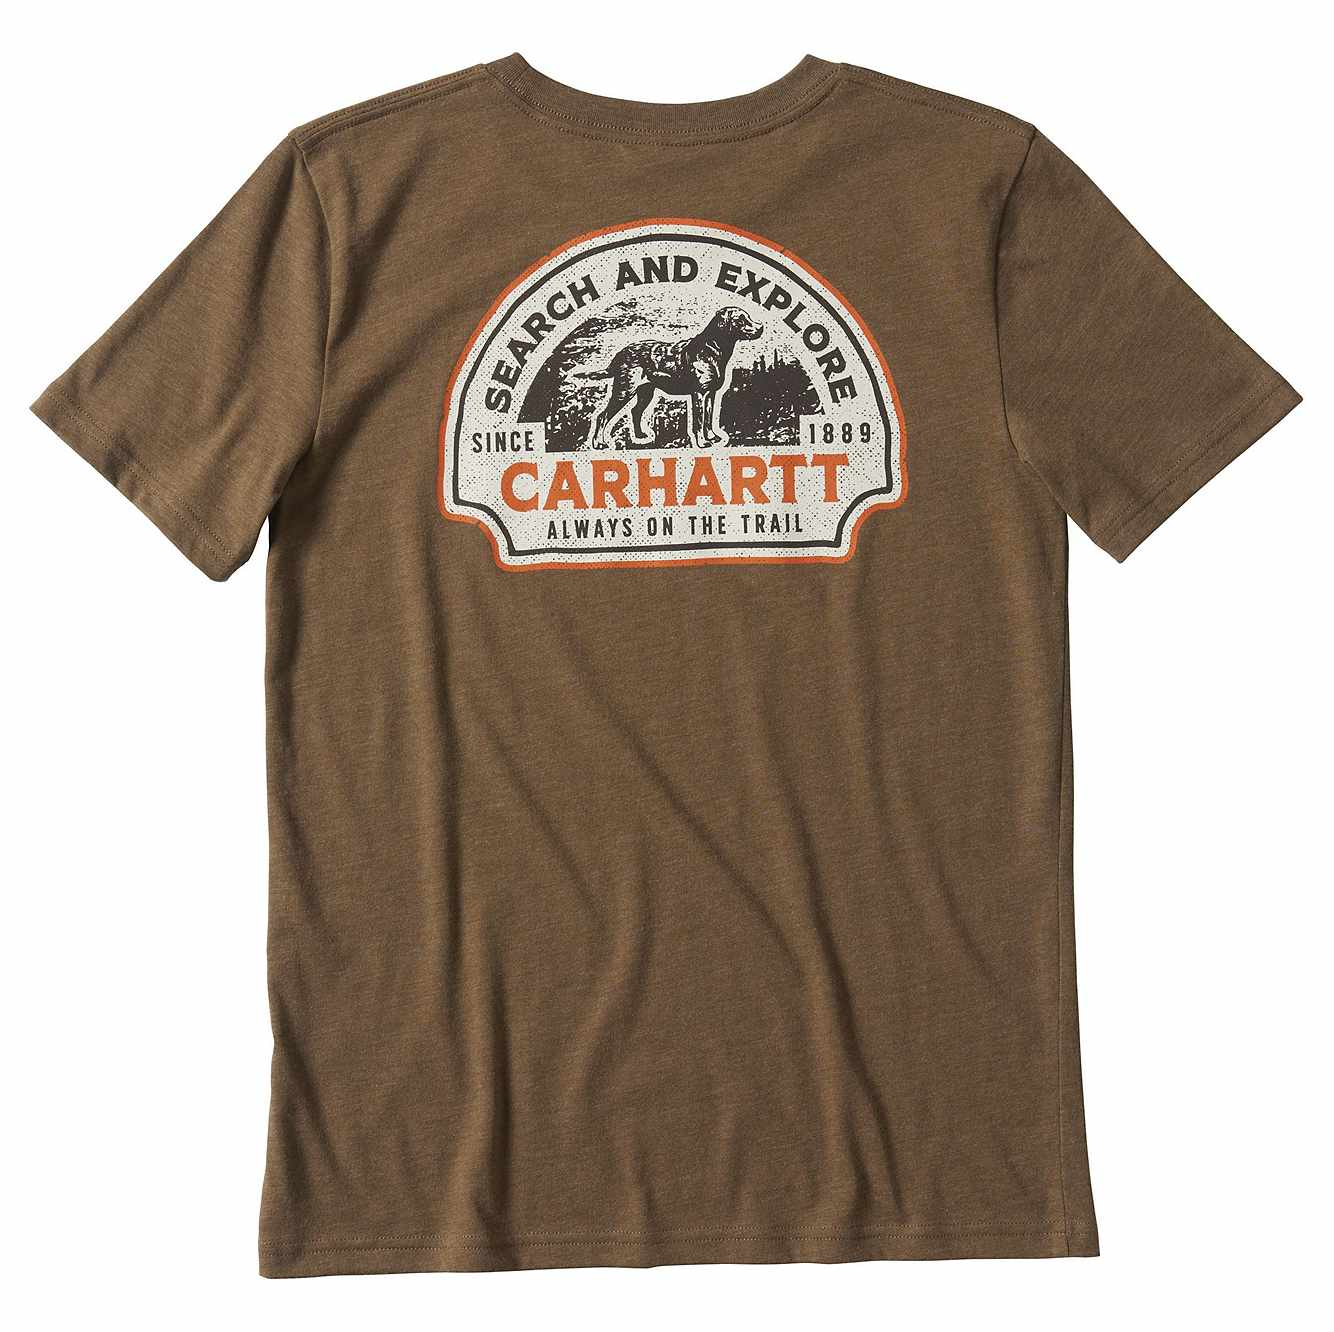 Picture of Search and Explore Graphic T-shirt in Canyon Brown Heather